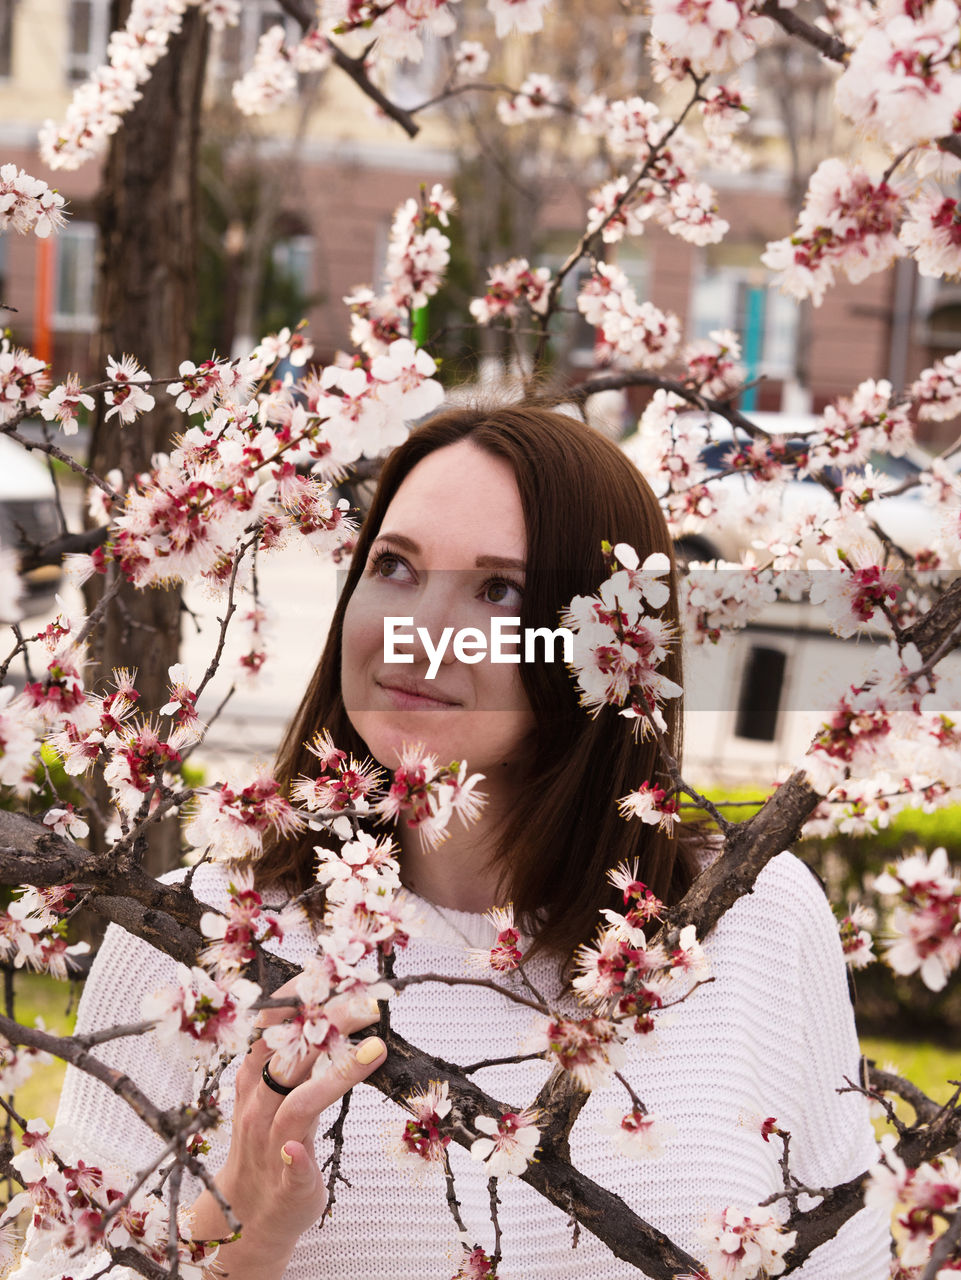 flowering plant, flower, plant, freshness, one person, portrait, tree, fragility, young adult, nature, cherry blossom, young women, blossom, vulnerability, real people, beauty in nature, springtime, pink color, growth, cherry tree, beautiful woman, hairstyle, flower head, outdoors